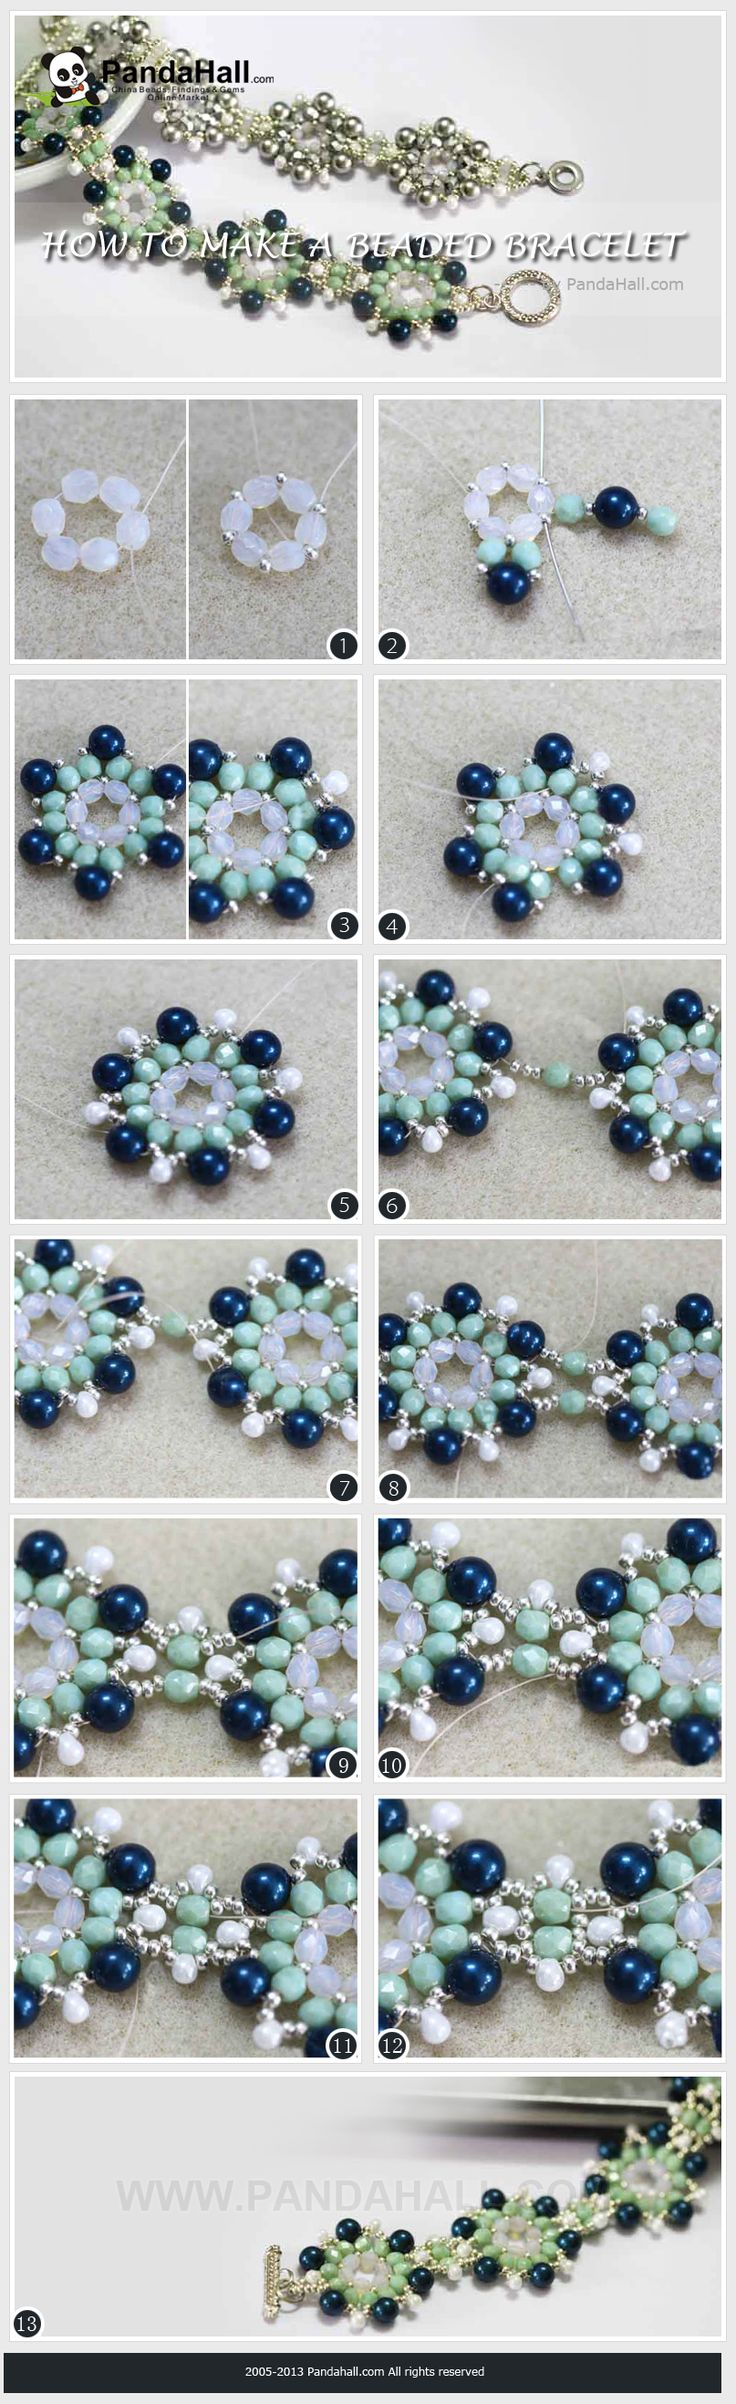 In the do it yourself bracelets tutorial, you will find out an efficient way on how to make a beaded bracelets that are extremely exquisite and highly adorable. The level is fitful for Beginner to Intermediate.